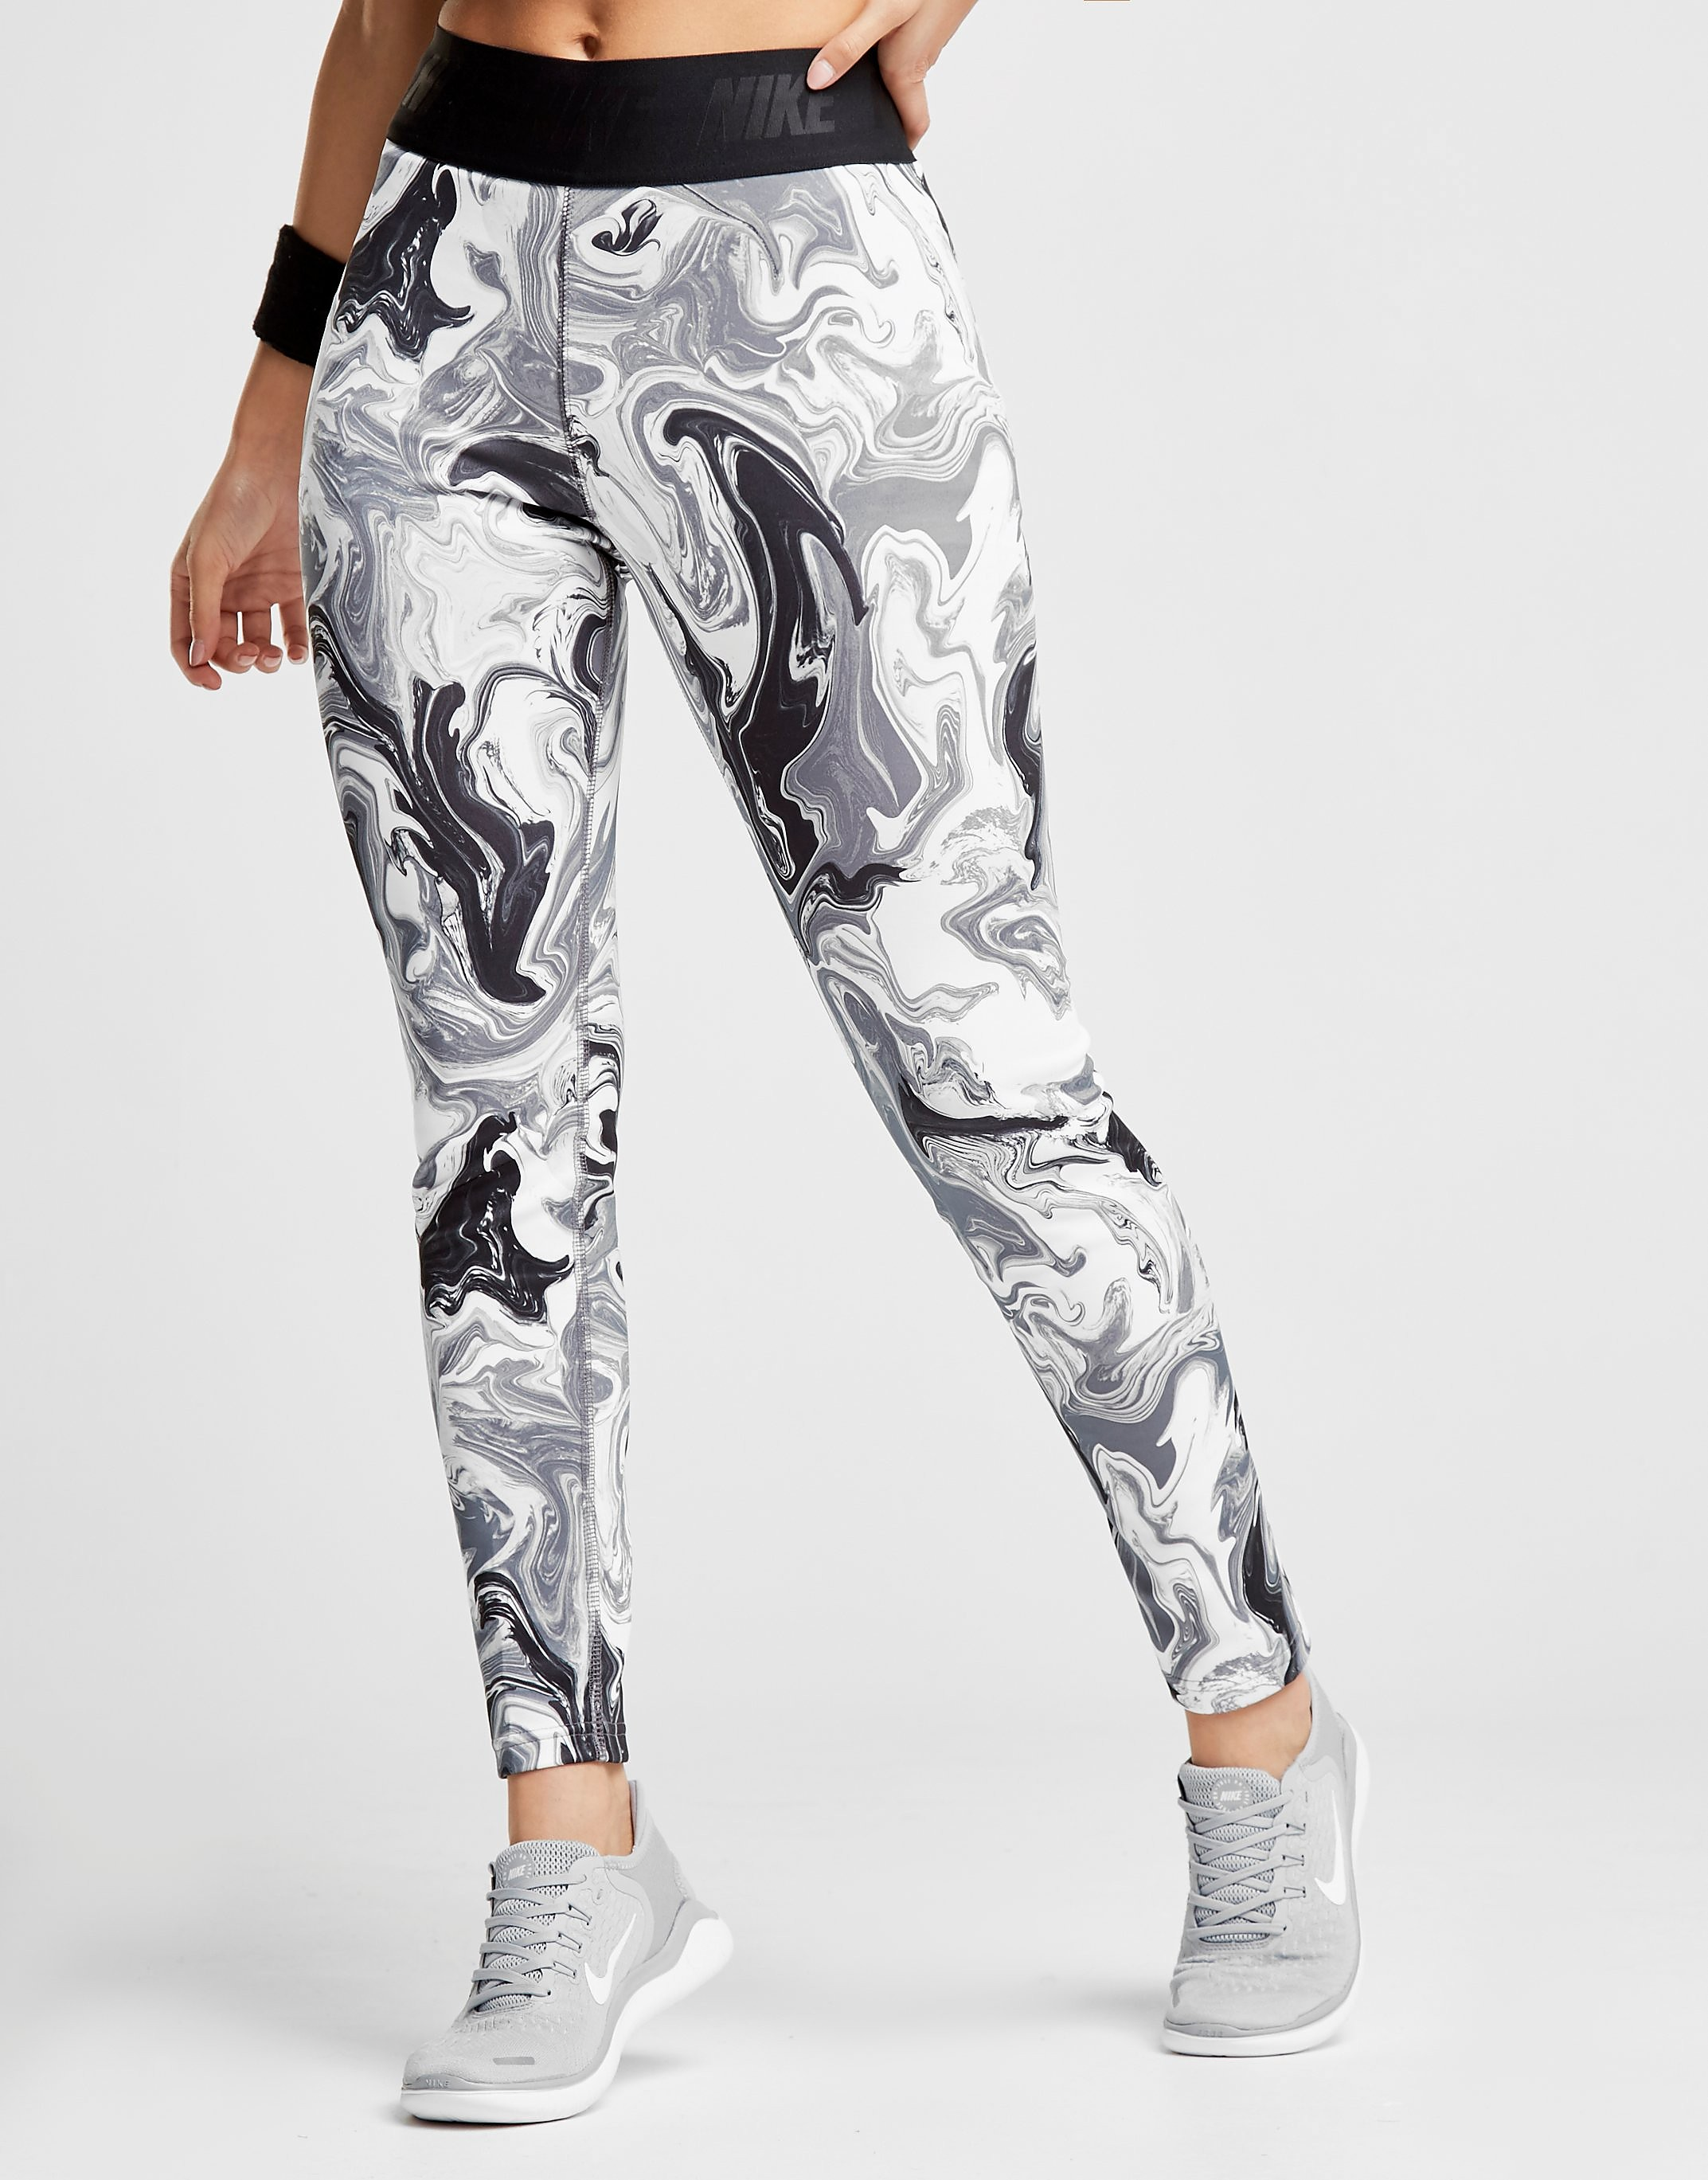 Nike leggings Marble All Over Print